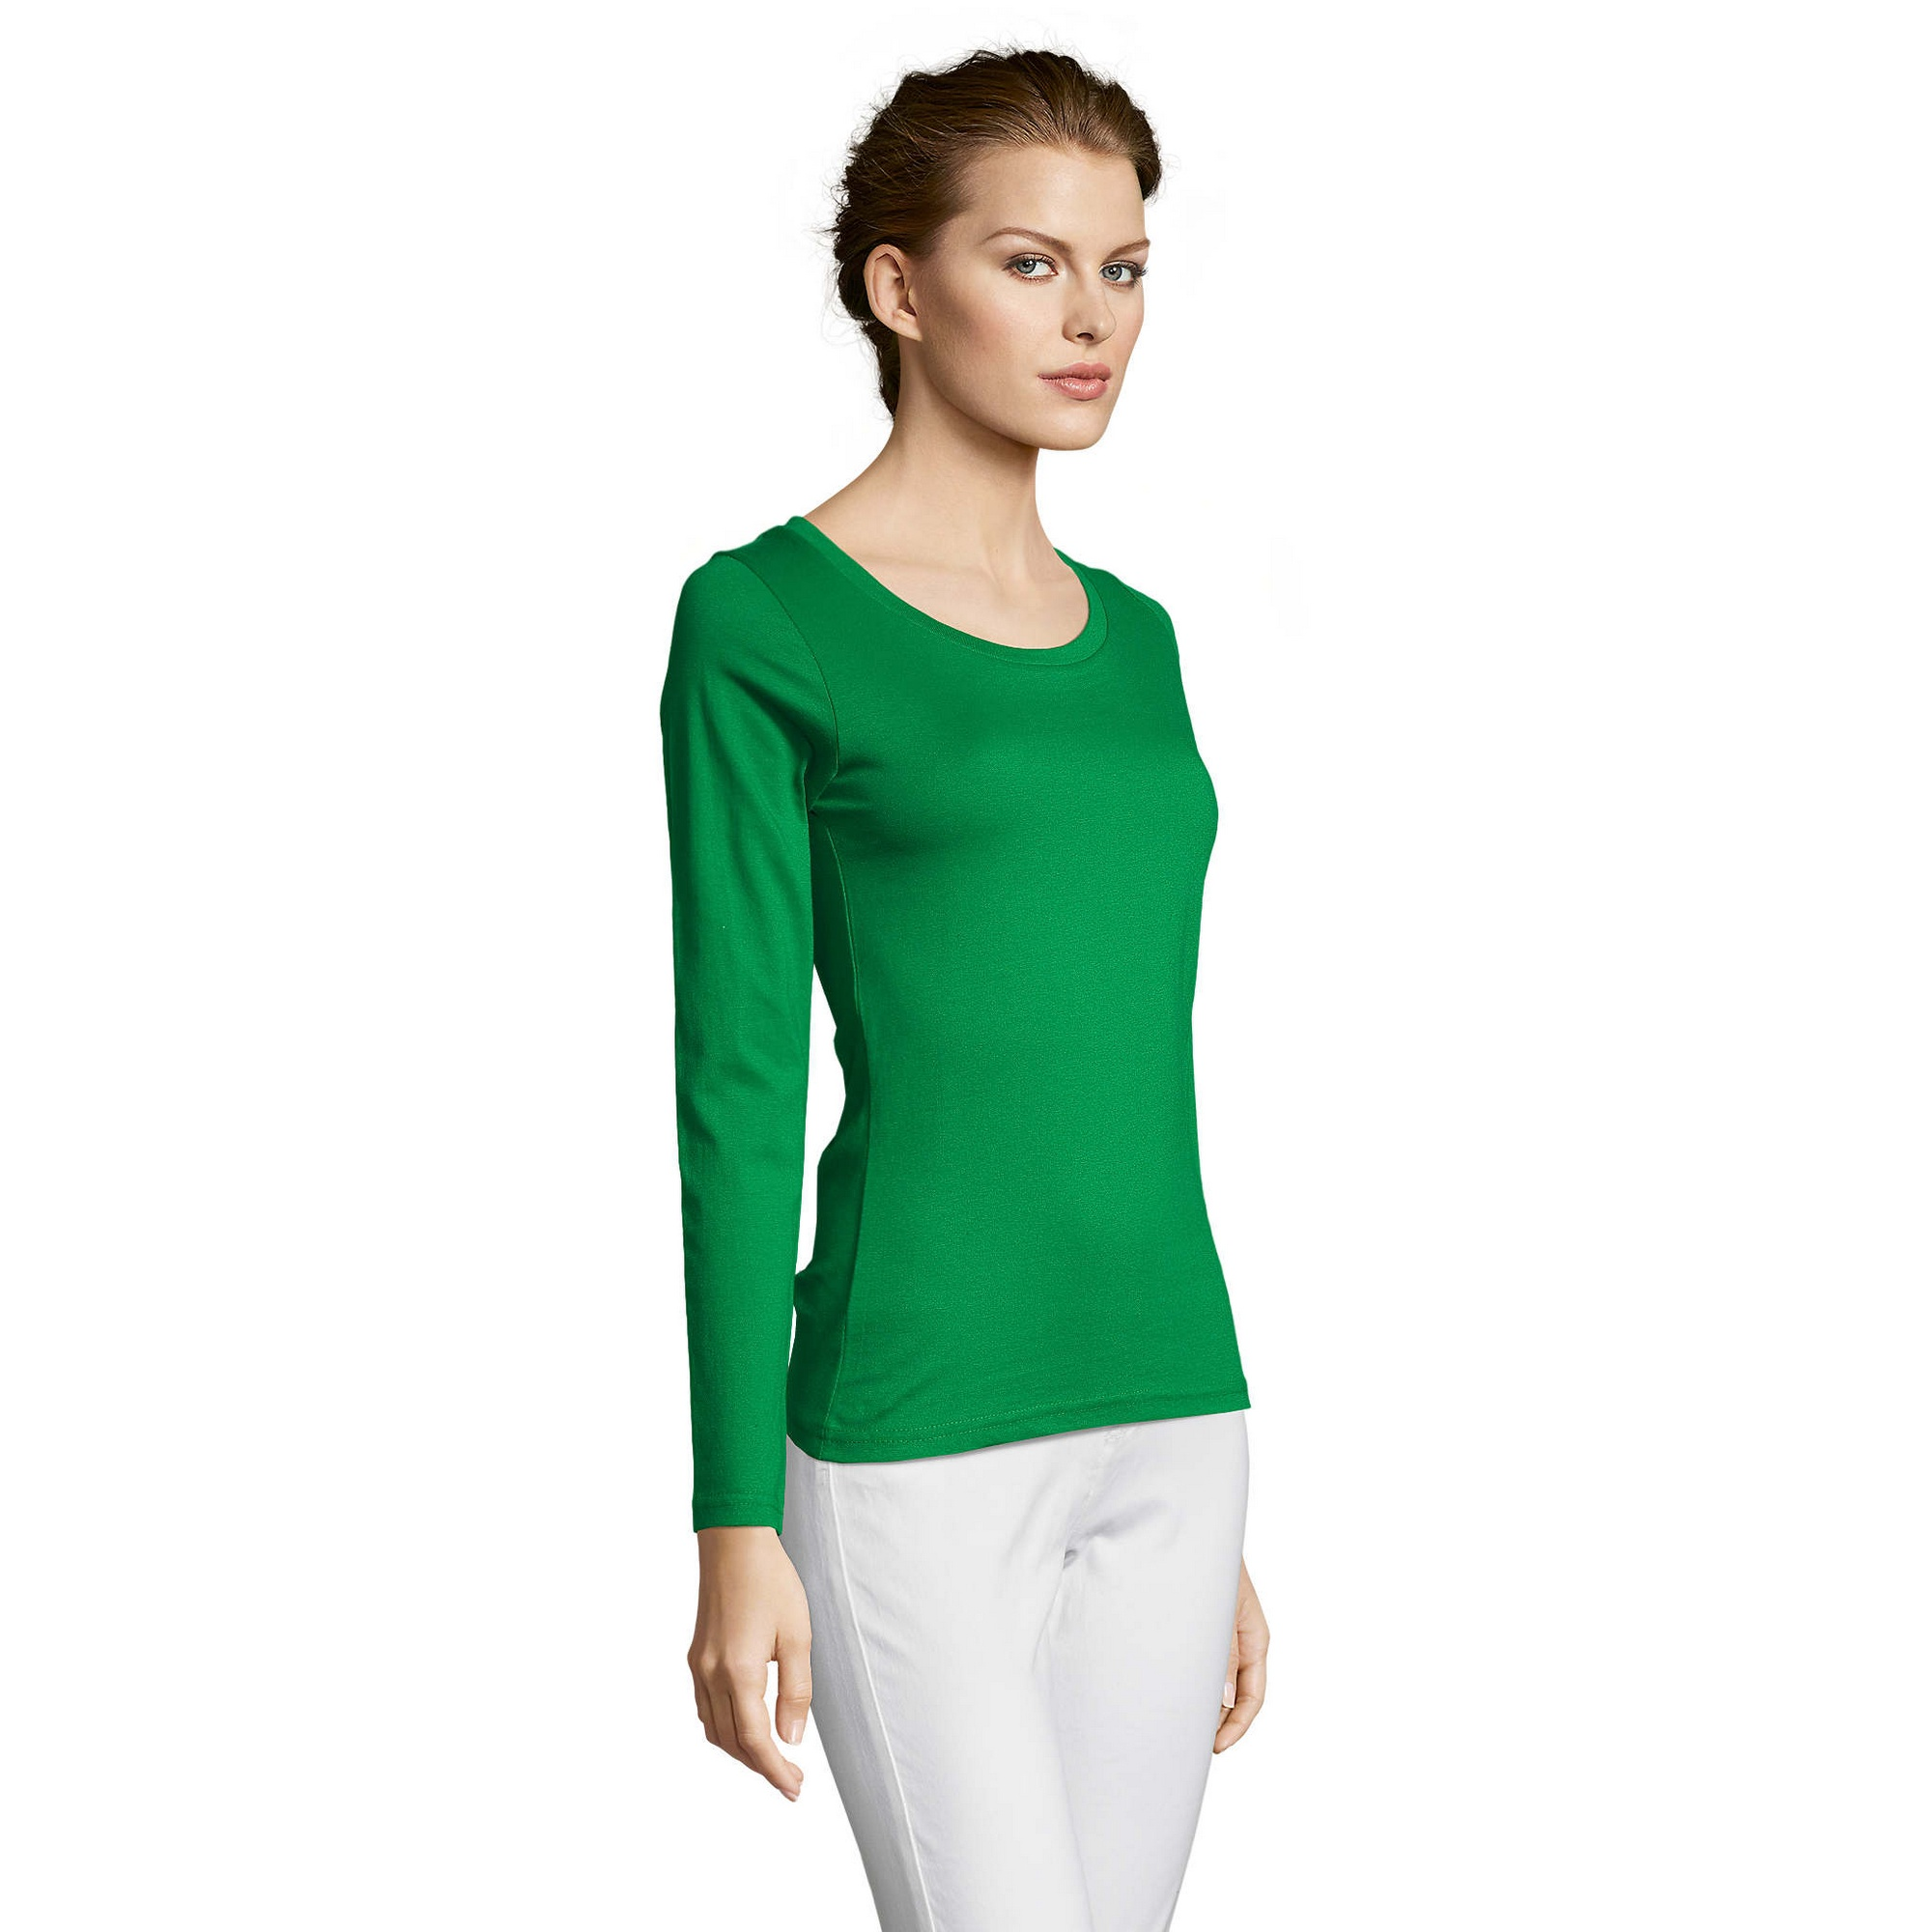 SOLS-Womens-Ladies-Majestic-Long-Sleeve-Coloured-Cotton-T-Shirt-PC314 miniatura 21